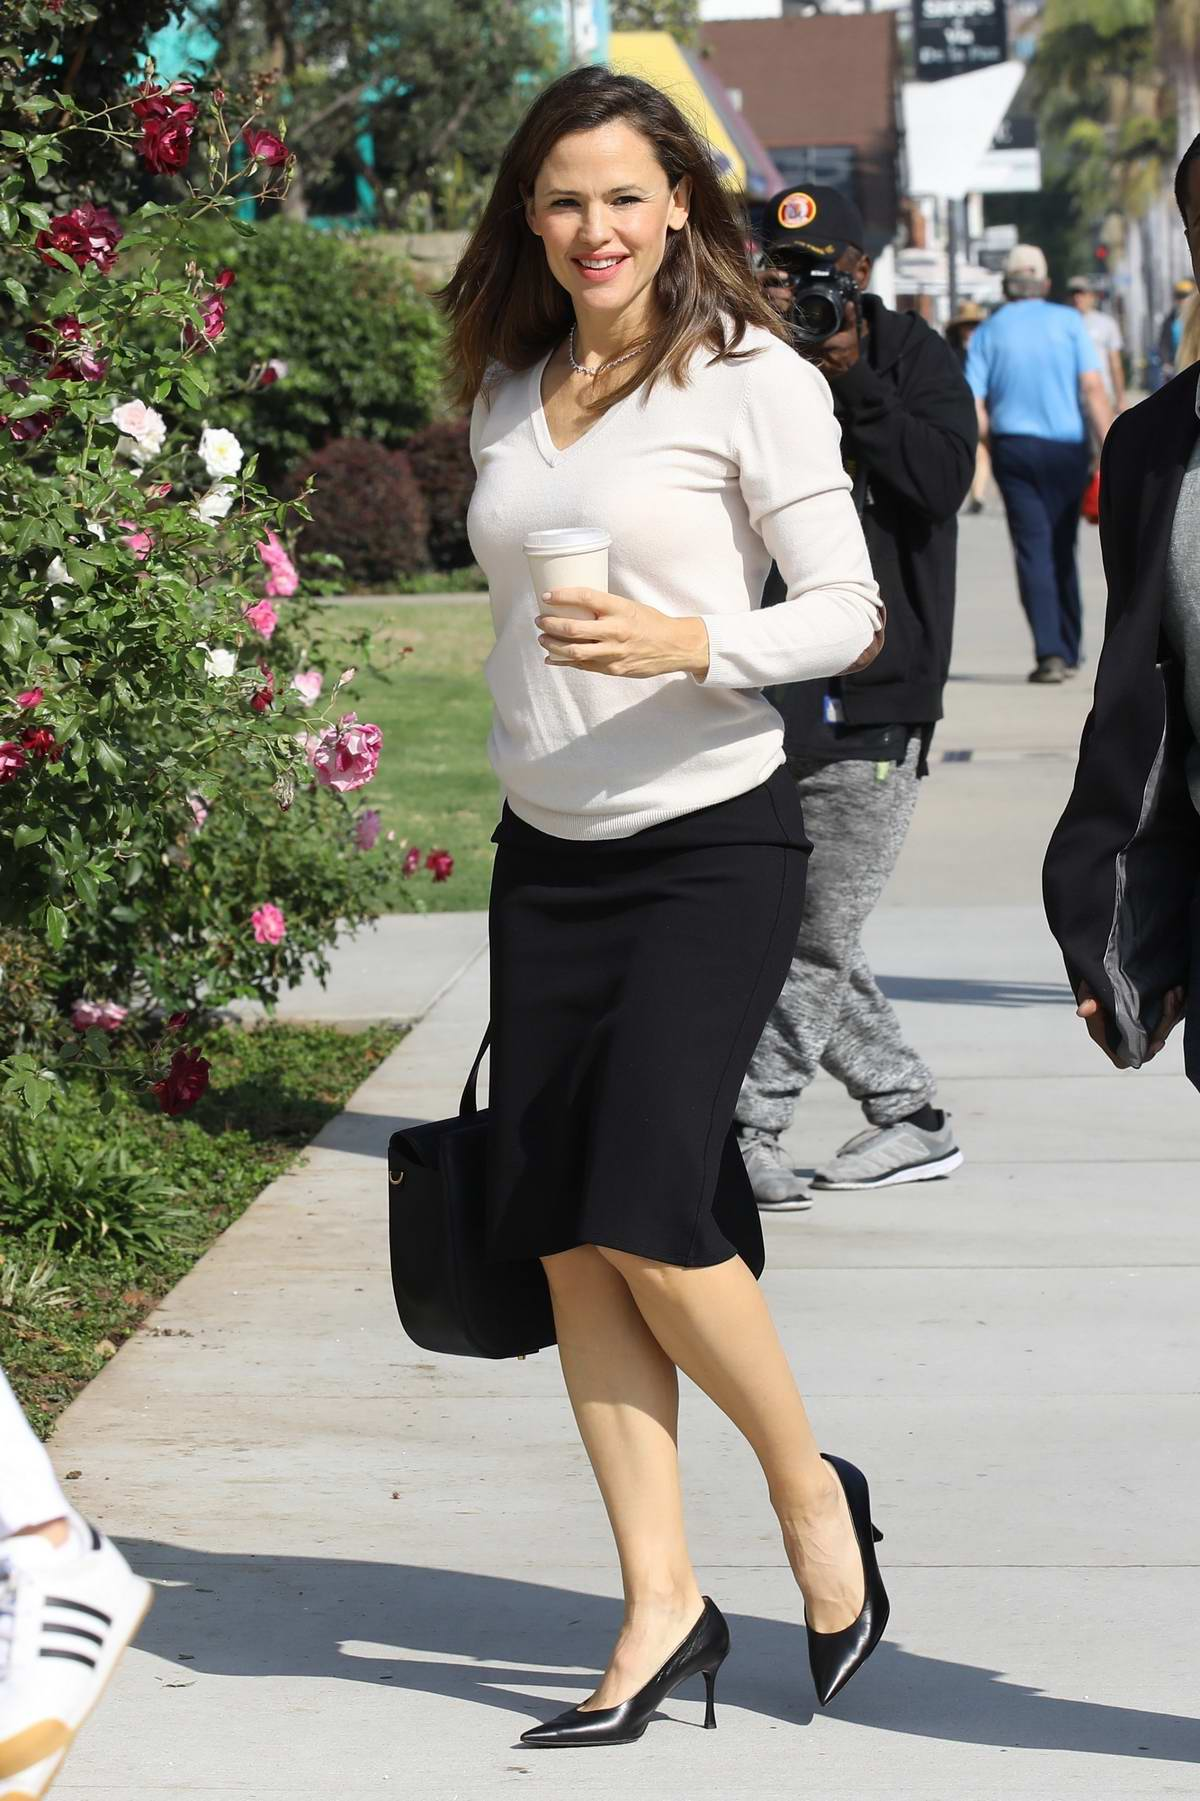 Jennifer Garner is all smiles as she arrives for Sunday Church services in Pacific Palisades, Los Angeles